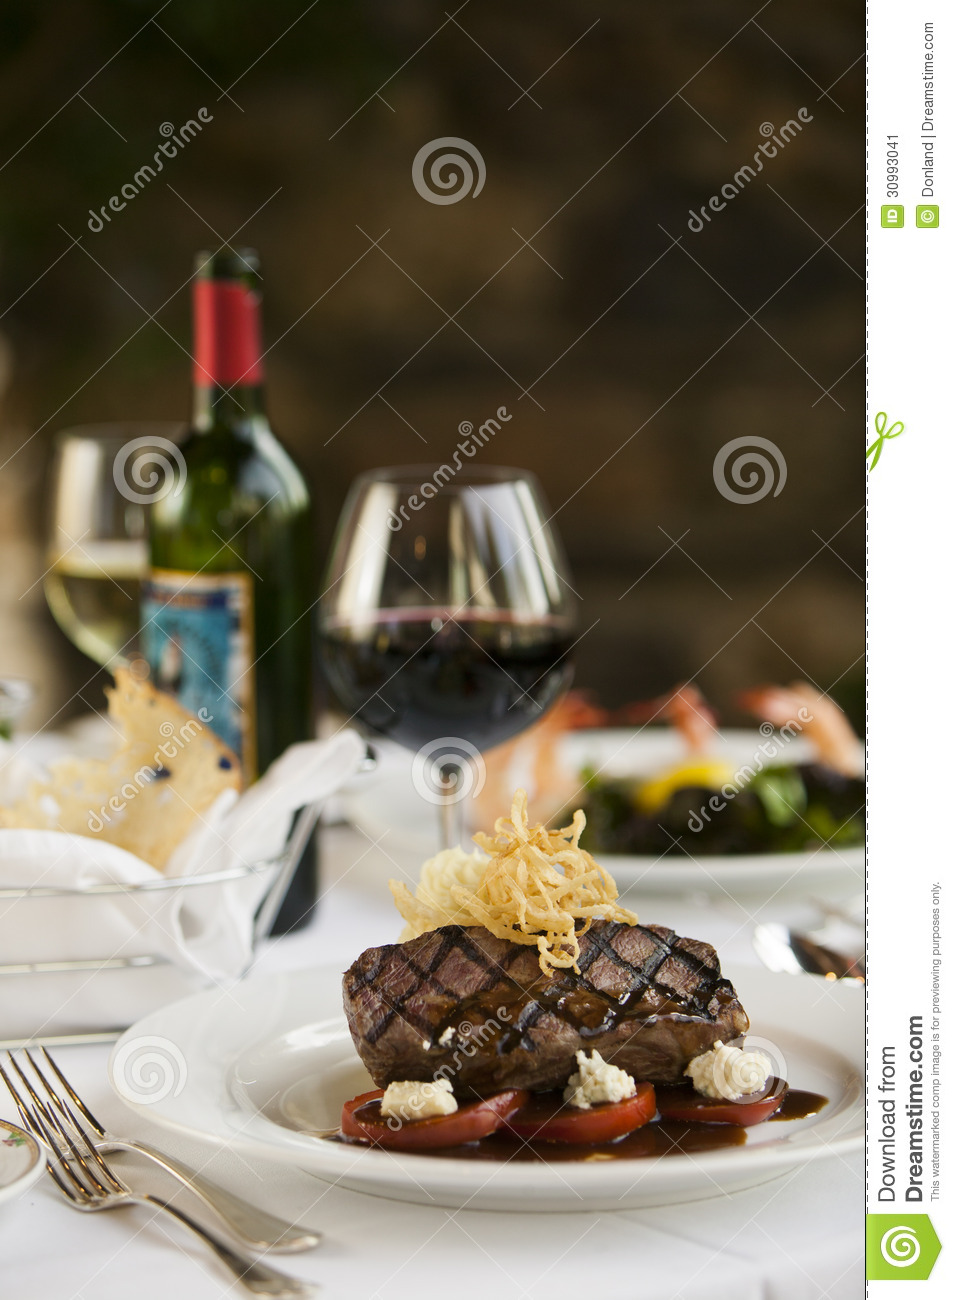 Steak Dinner On White Plate Stock Image Image 30993041